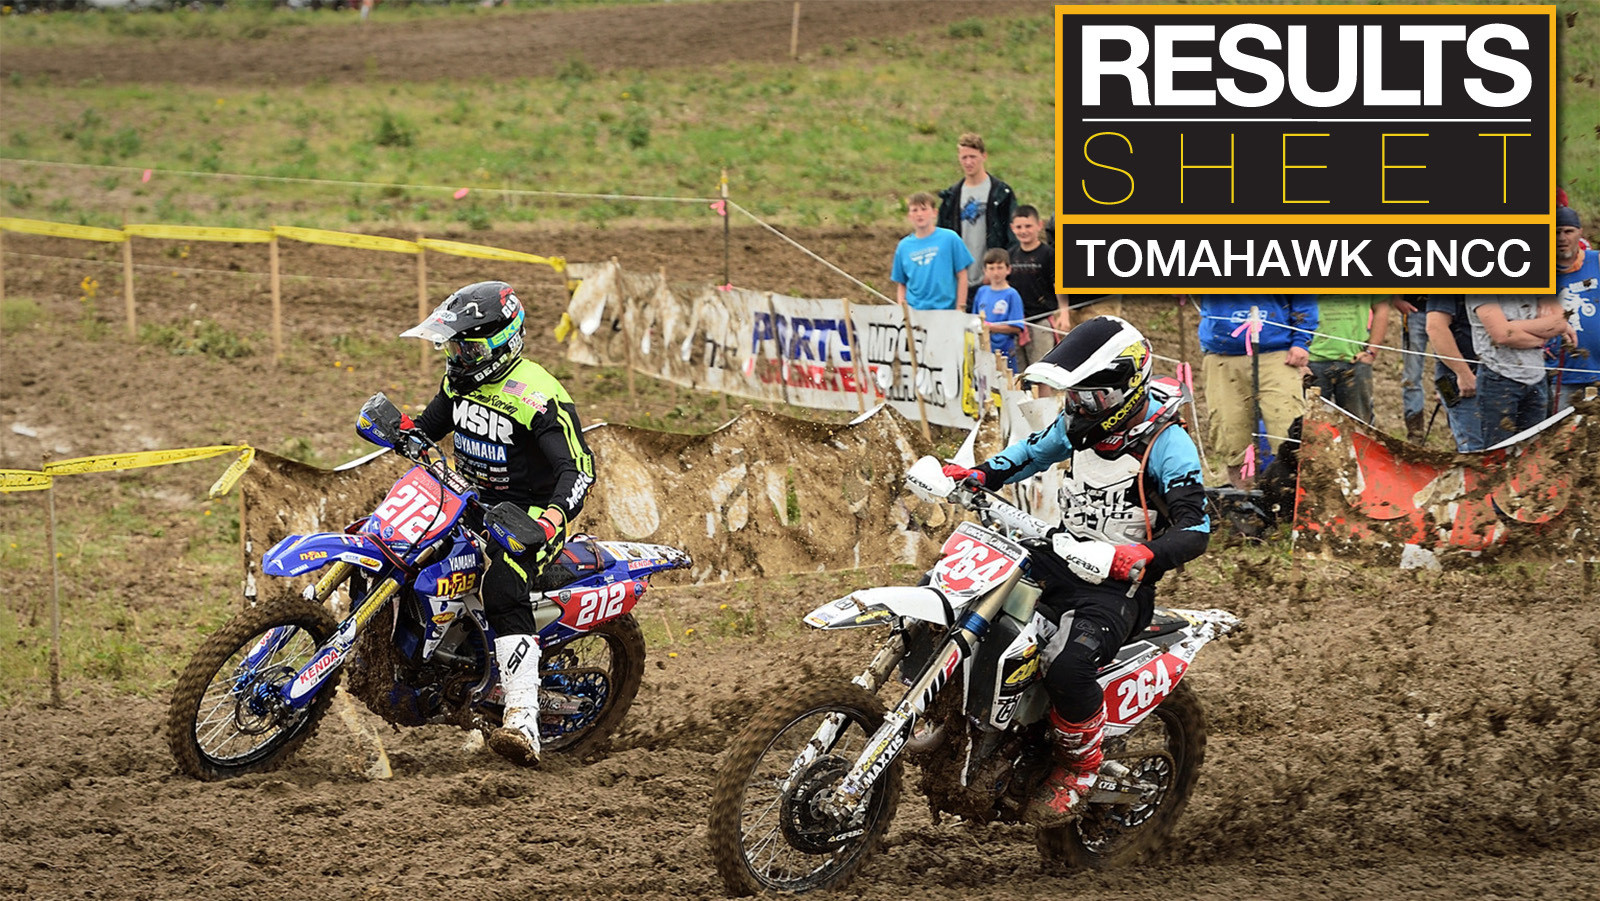 Results Sheet: Tomahawk GNCC